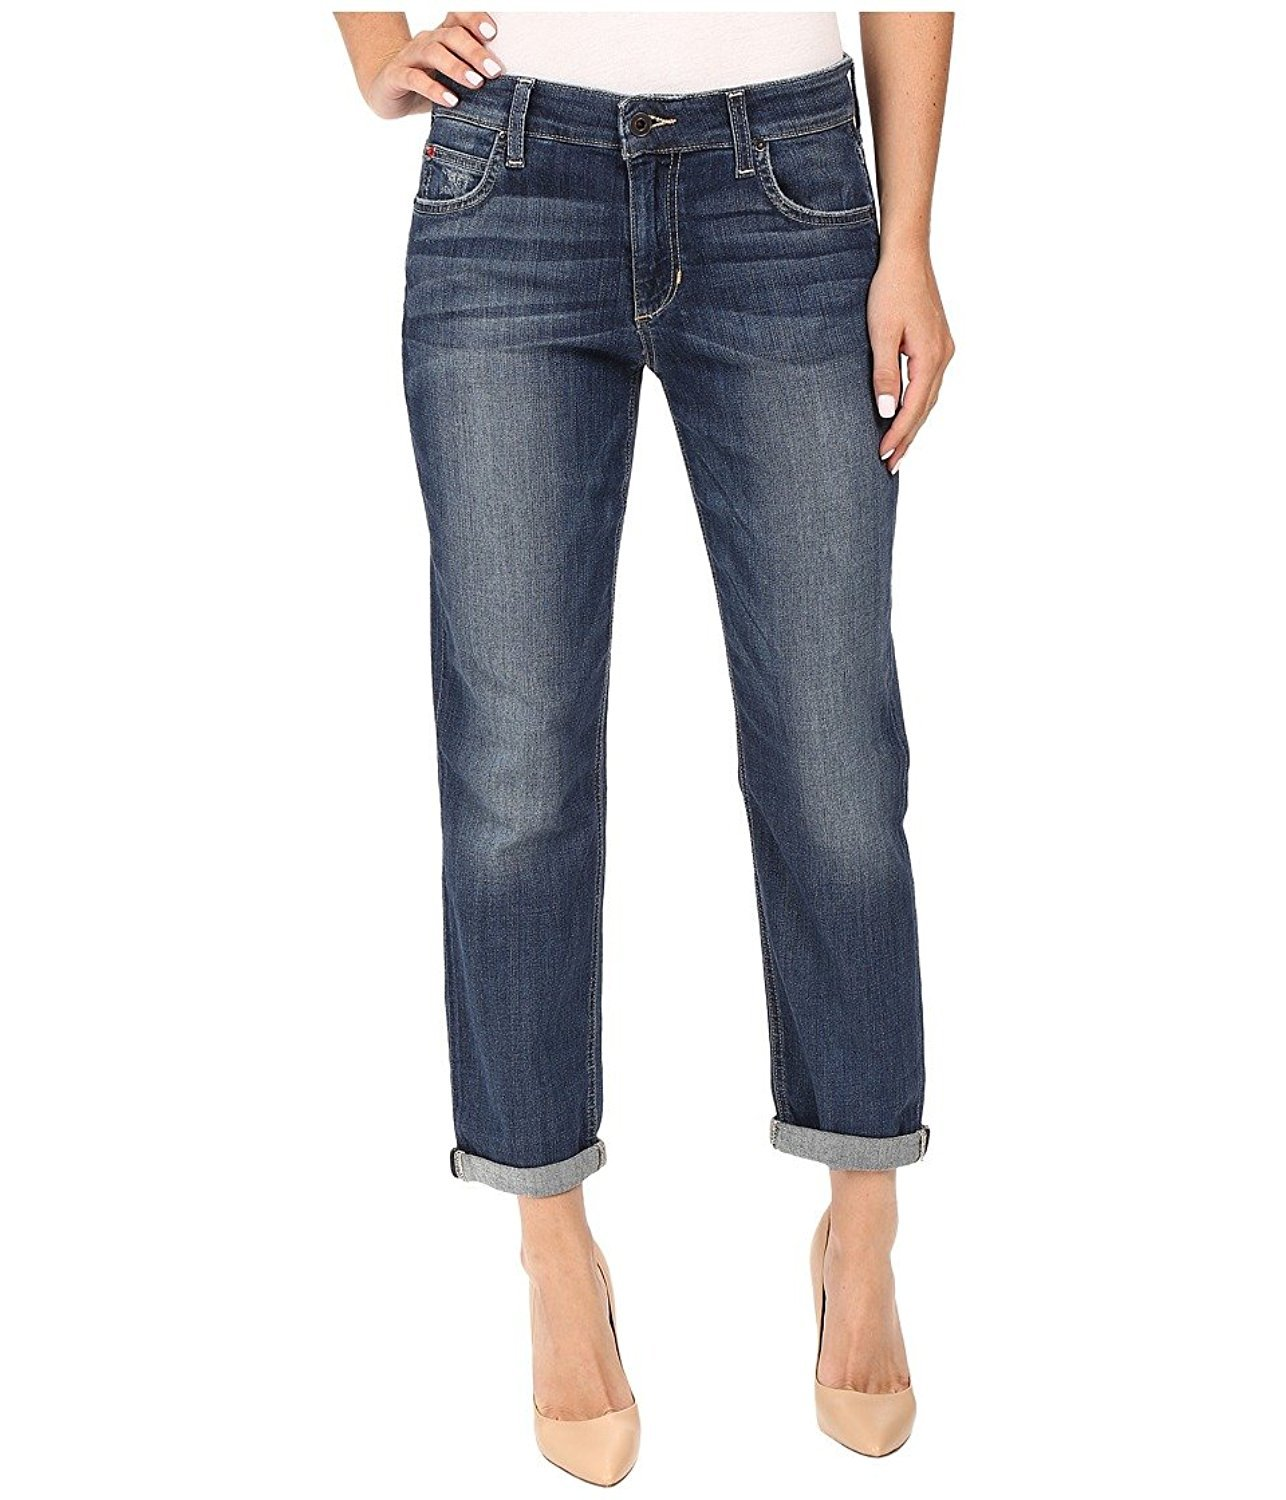 Joe's Jeans Women's Billie Ankle in Sonoe Sonoe Jeans 25 by Joe's Jeans